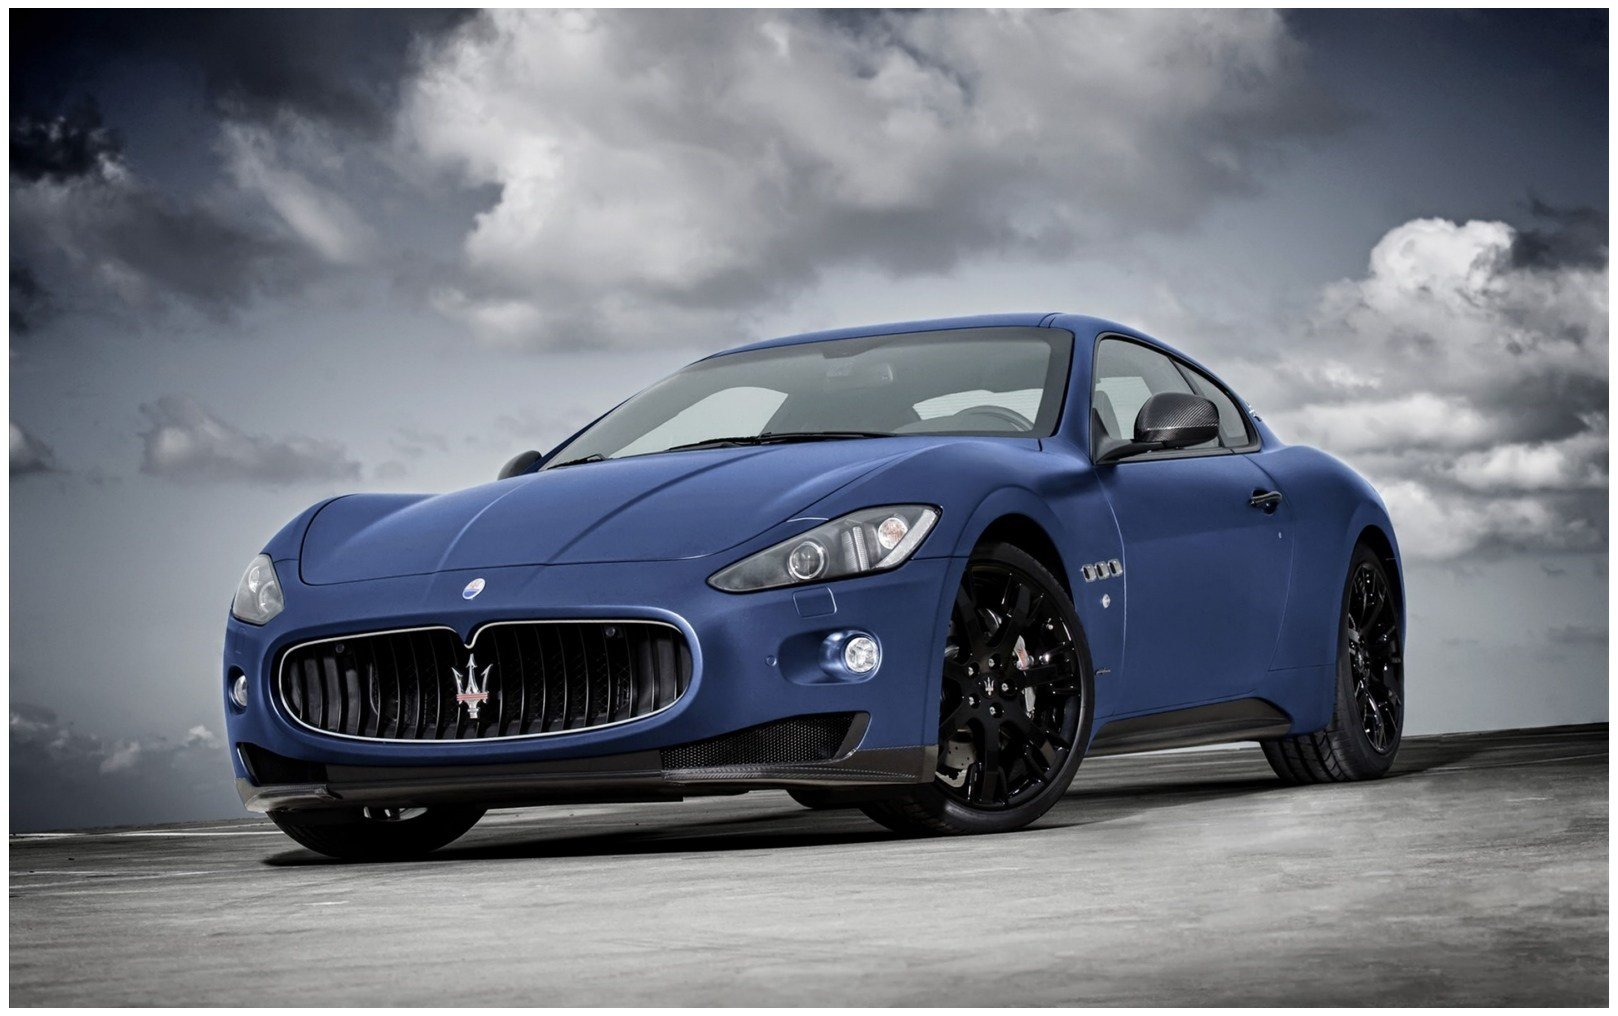 Latest Maserati Granturismo Car Hd Wallpapers View Wallpapers Free Download